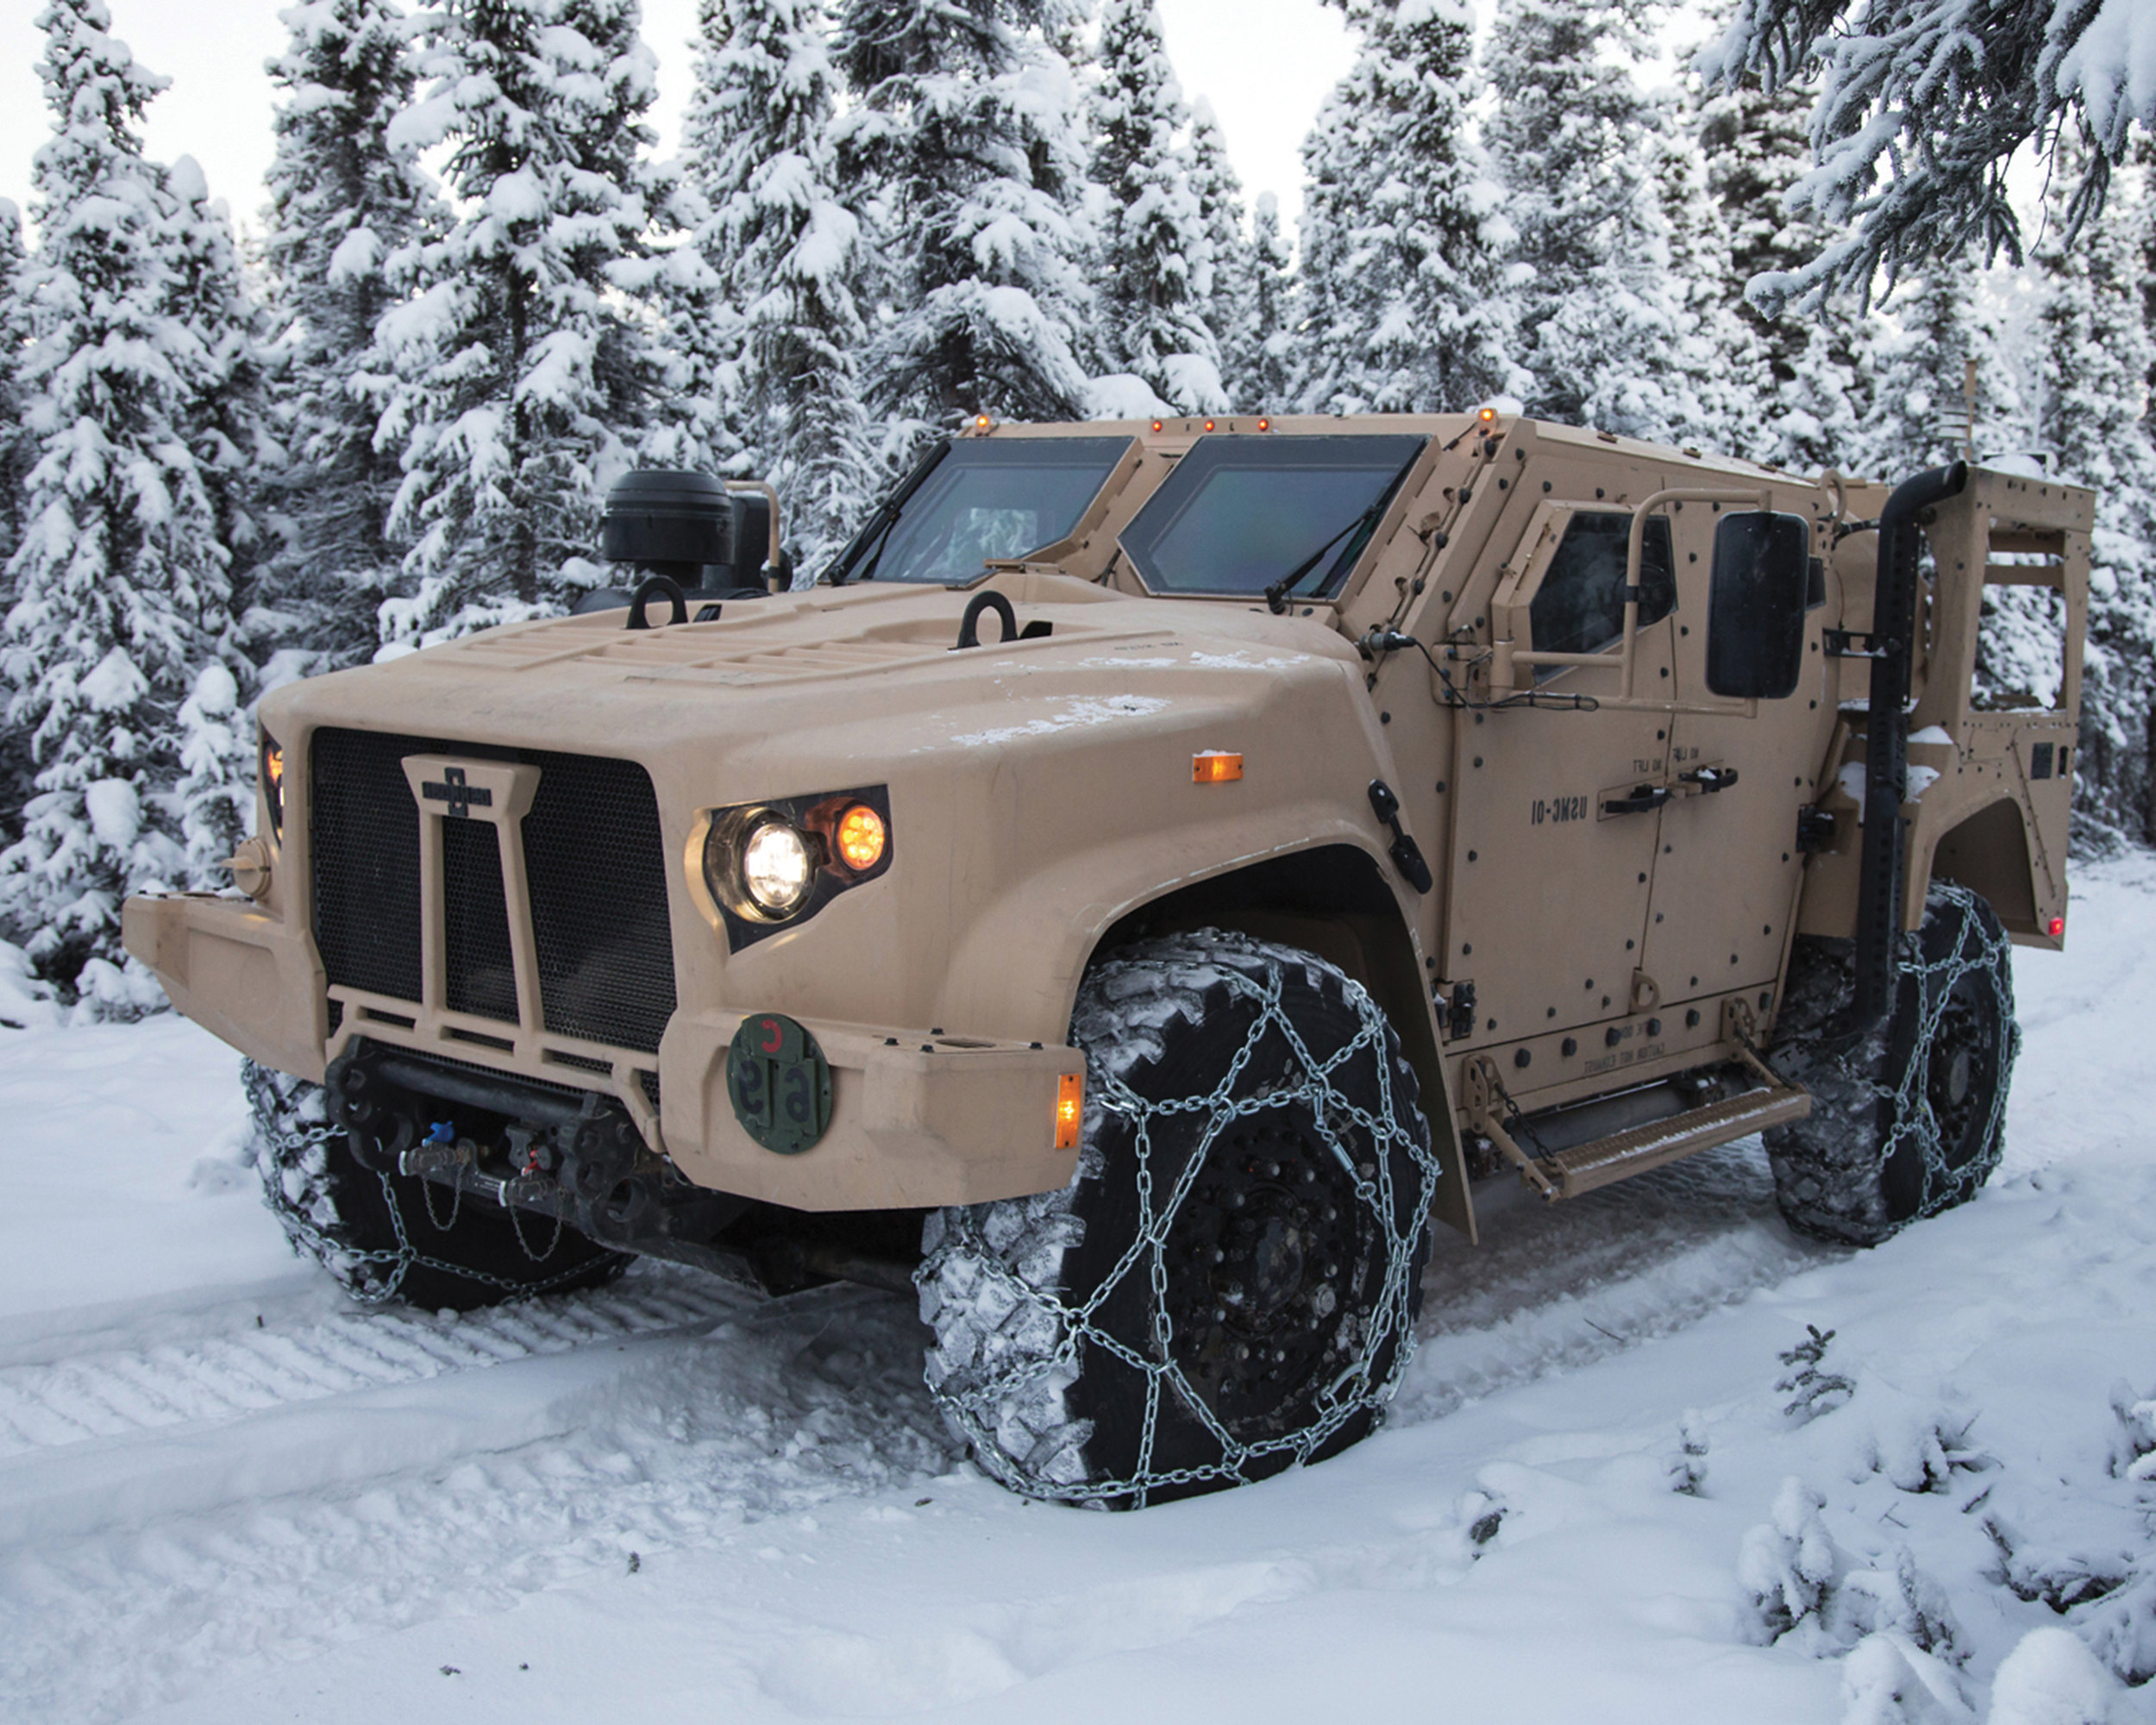 AST has long been the premier supplier of prototype and production wheels used in a proprietary run-flat wheels by international military suppliers. AST produced wheels are used on prominent platforms like the Boxer and Hummer replacement JLTV.